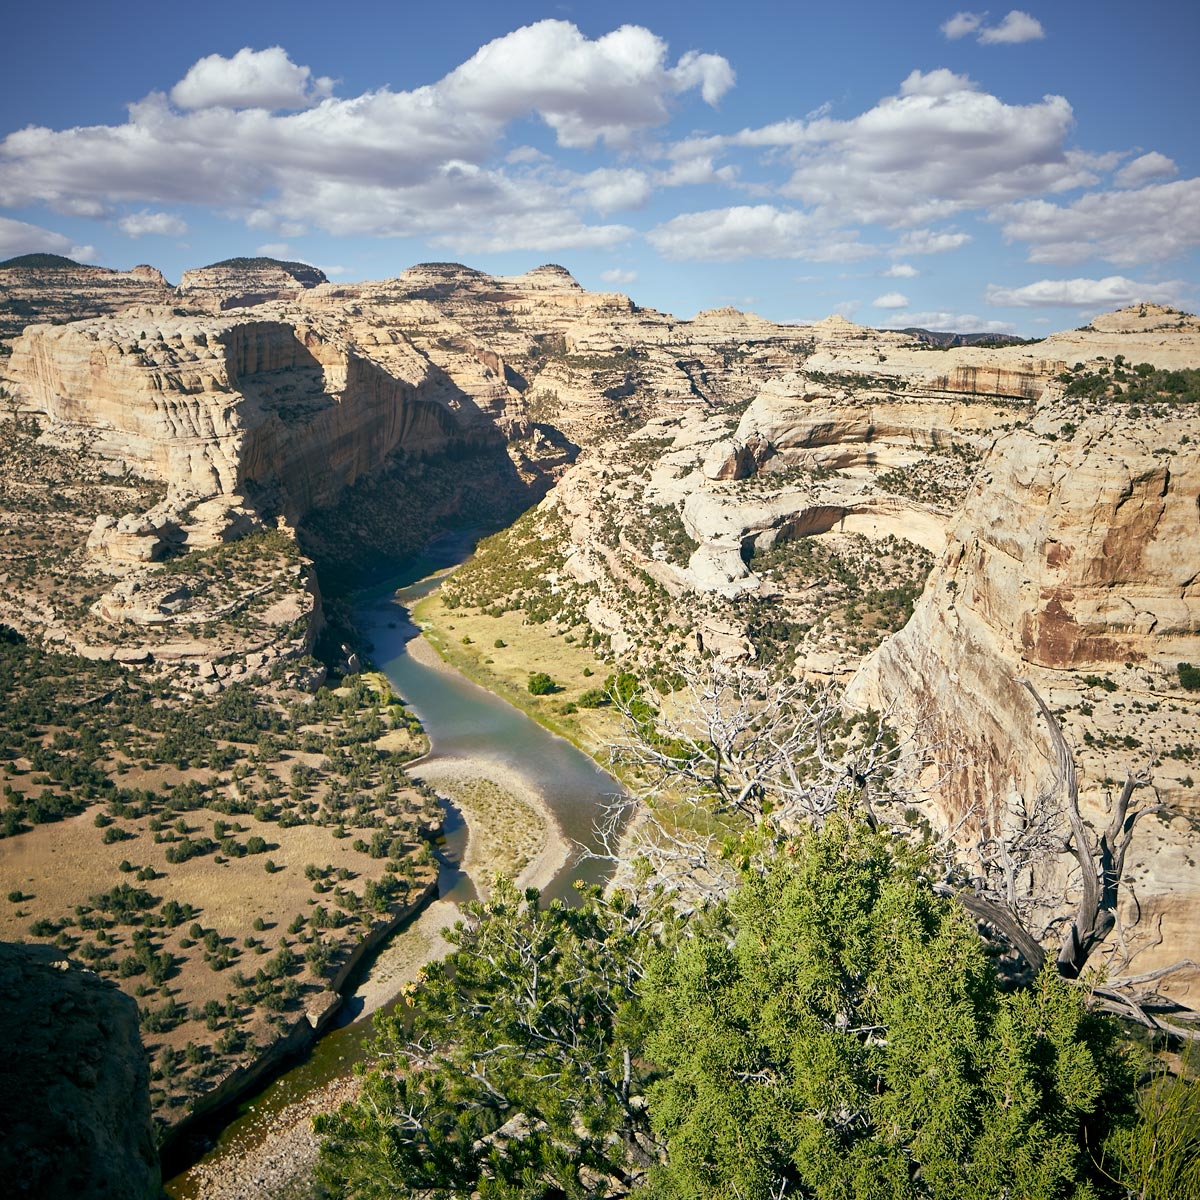 Dino-Yampa-Upstream-of-Wagon-Wheel-Point-Square-9-16-16-Web